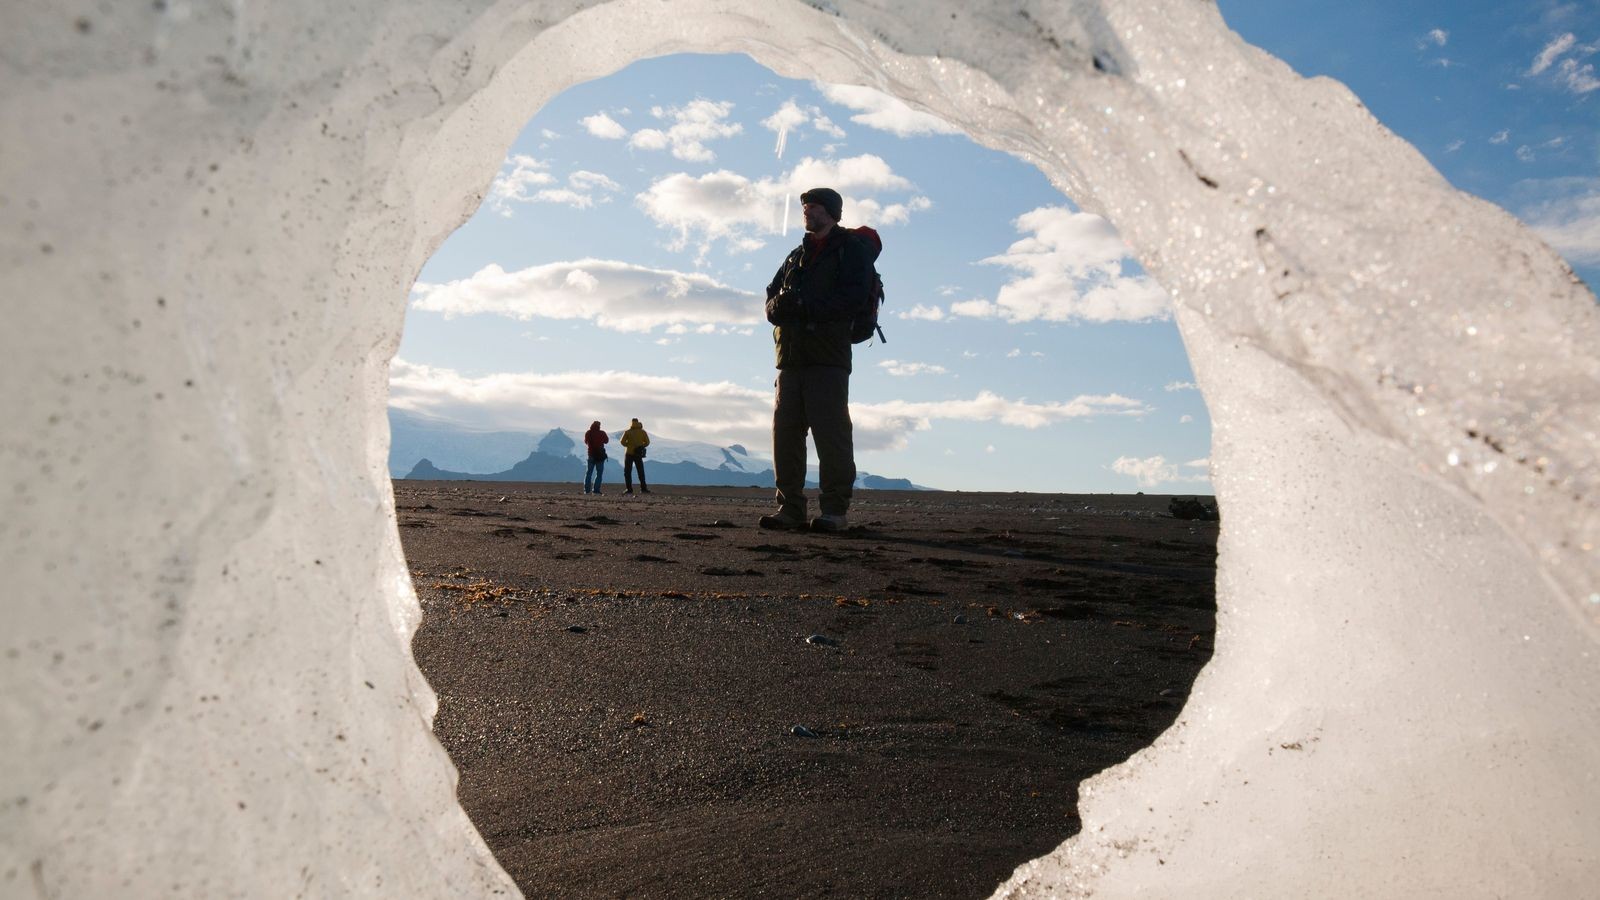 Observers regardmelting ice inJokulsarlon, Iceland.Climate change is one of five goals, or 'Earthshots', entrants are challenged ...